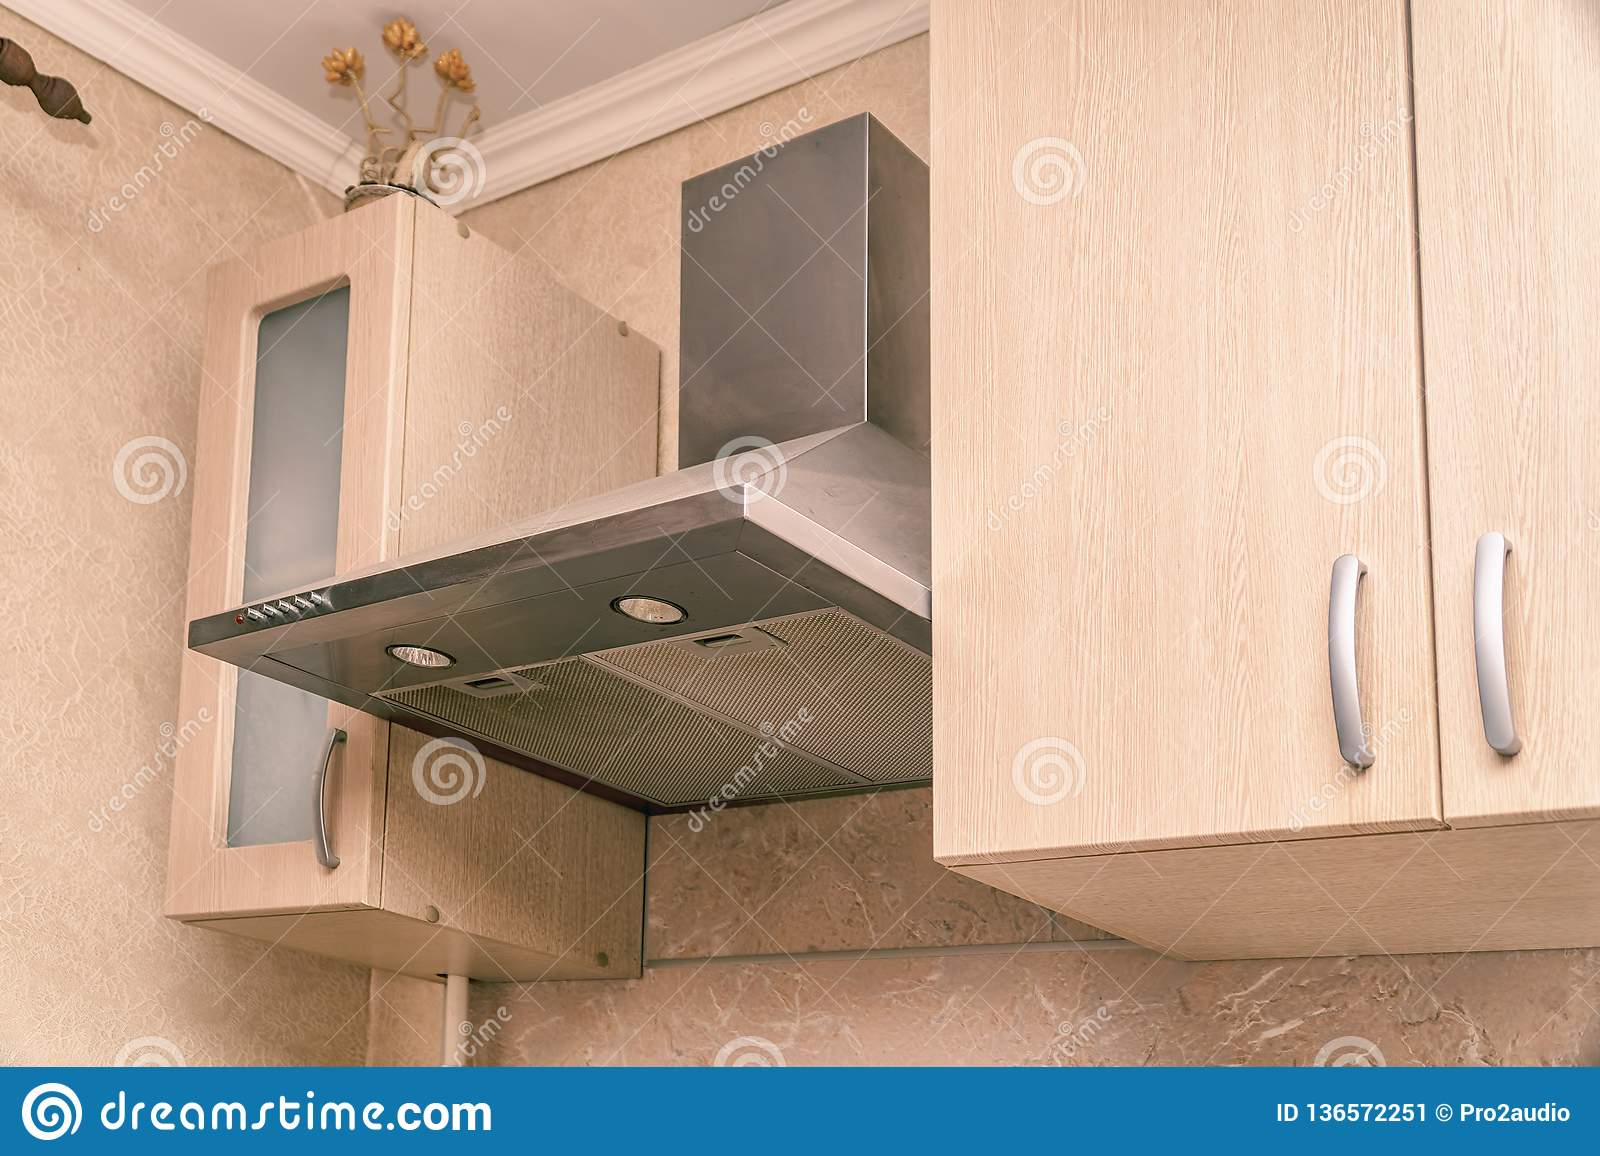 Hood Extractor Fan In The Kitchen Stock Image Image Of Home Extractor 136572251